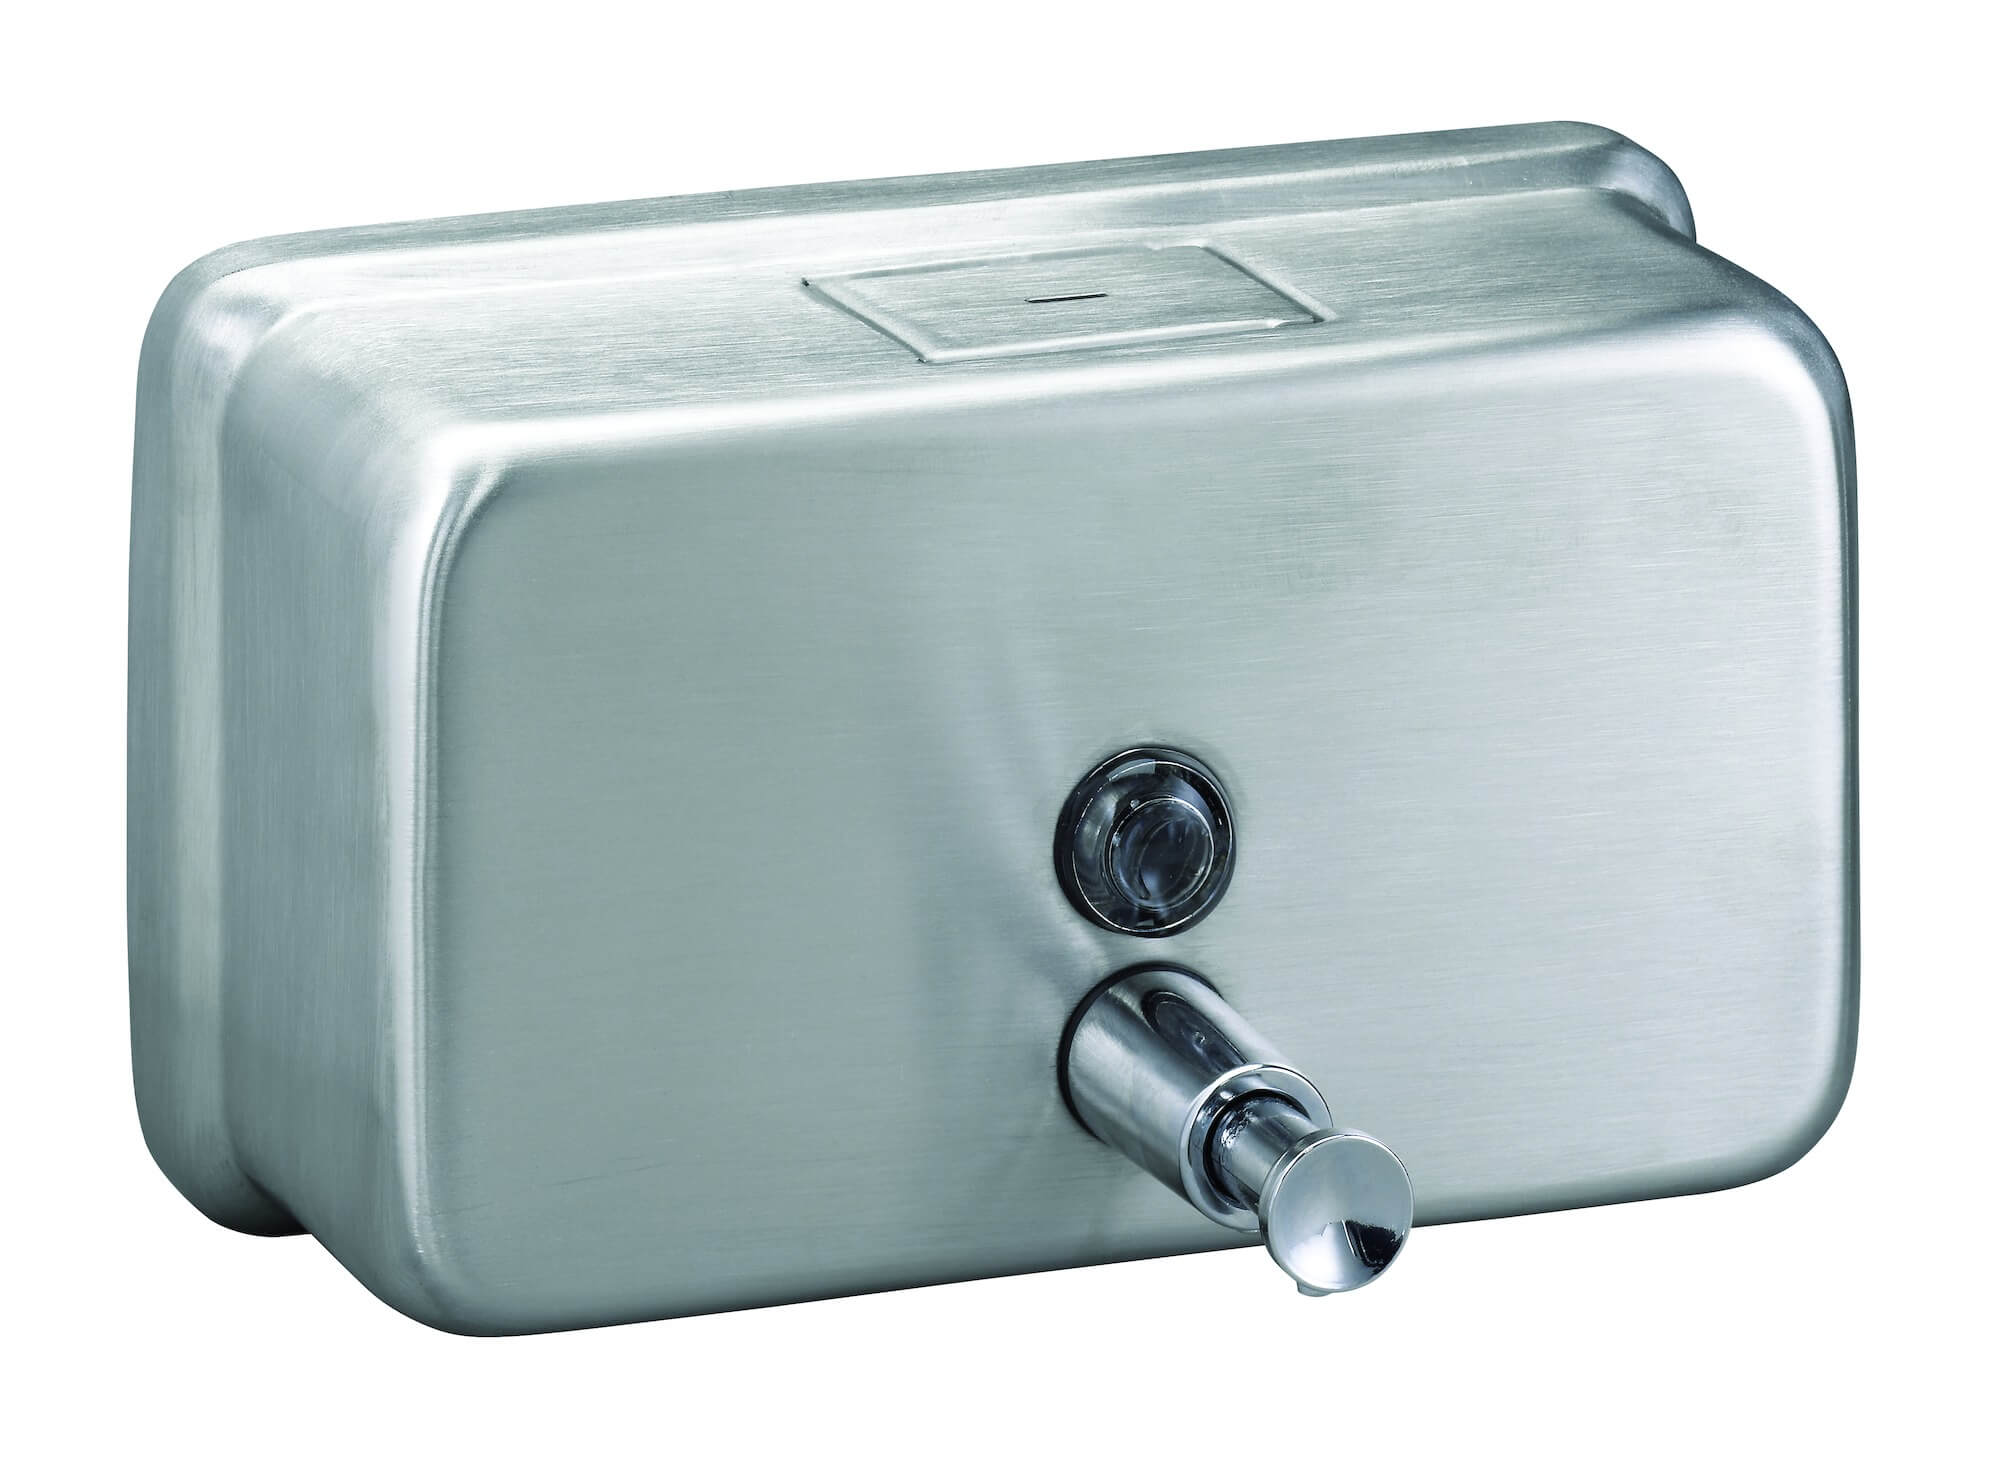 commercial-soap-dispenser